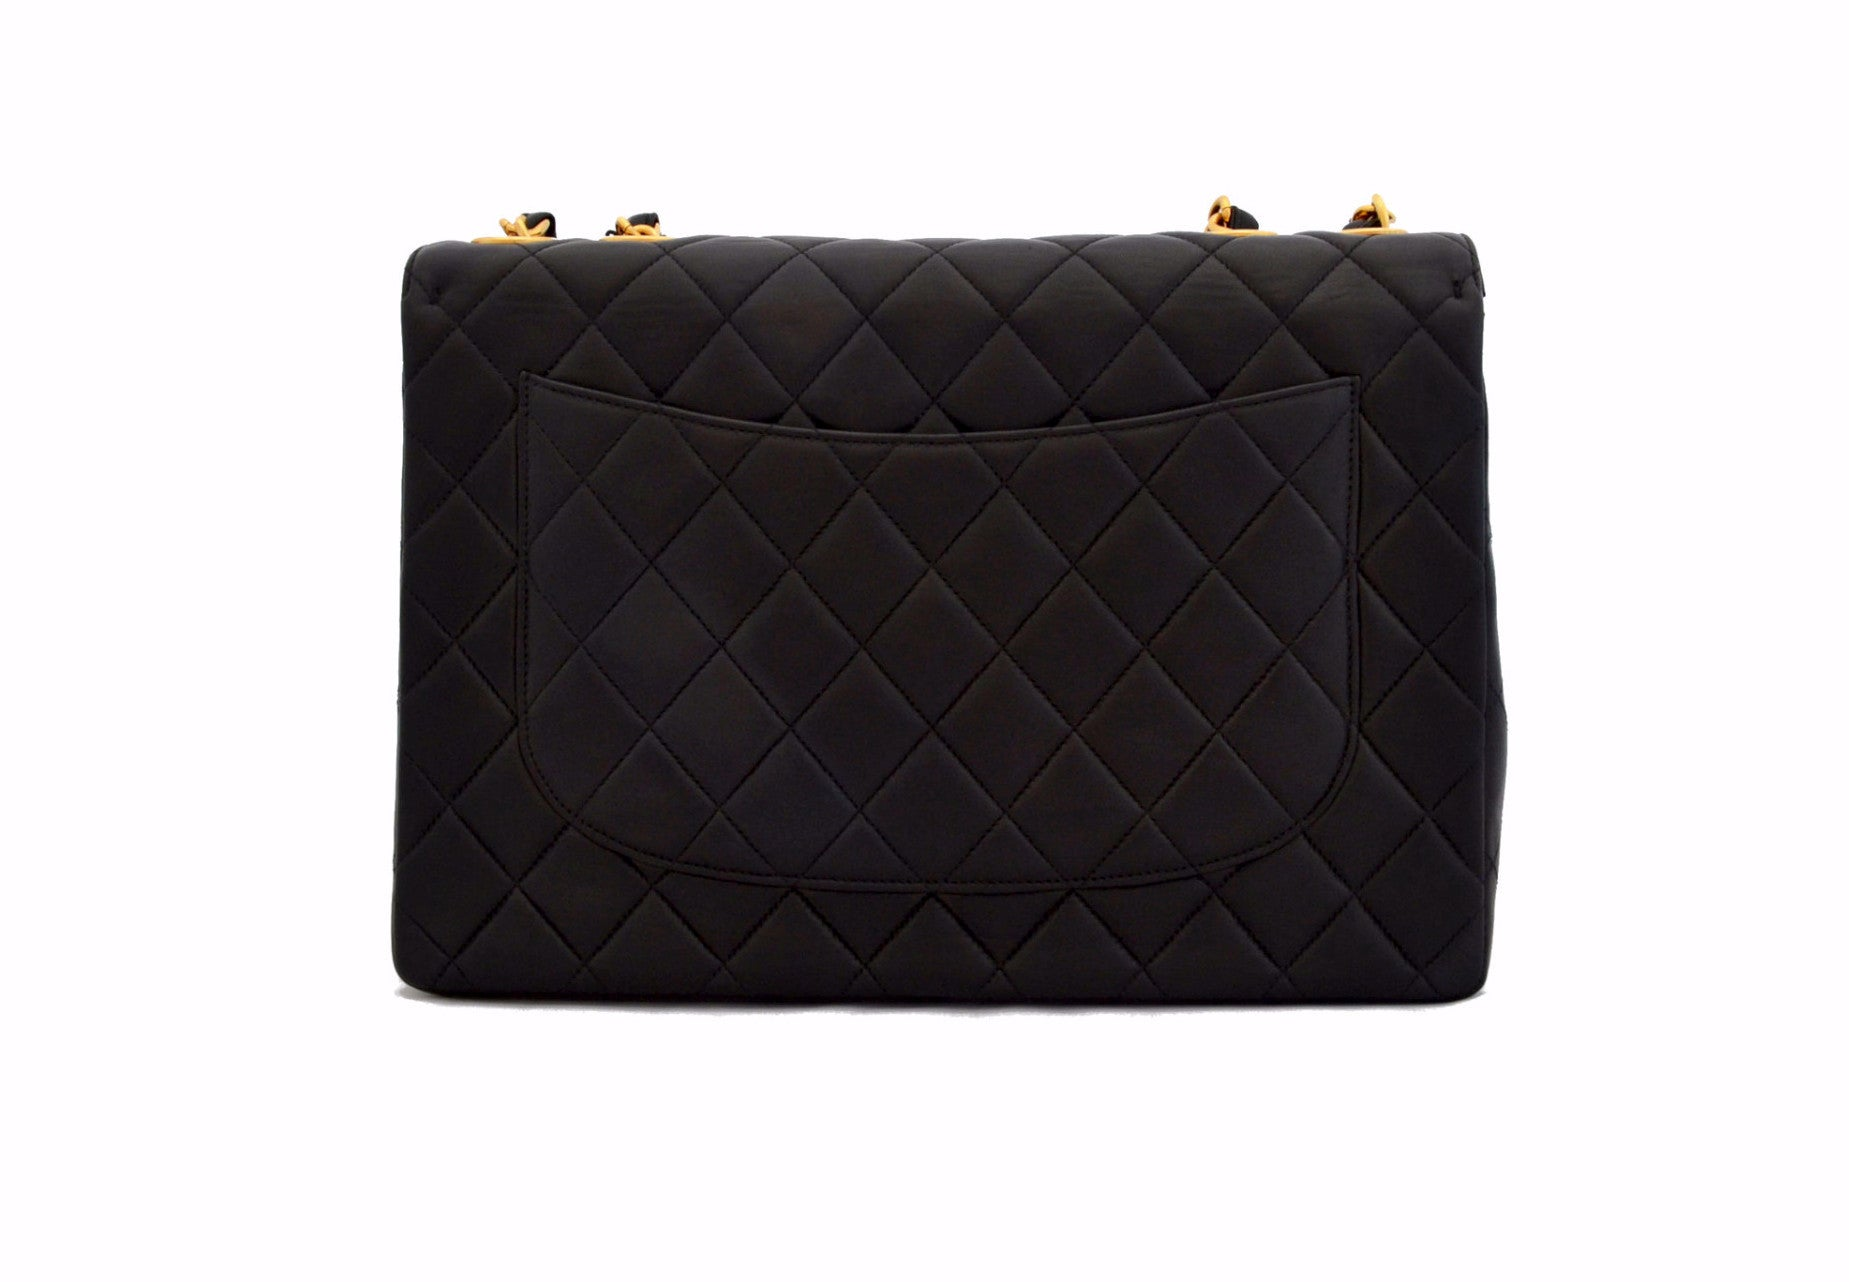 CHANEL VINTAGE JUMBO BAG - Quilted Lambskin in Black 0a6a1410828bf